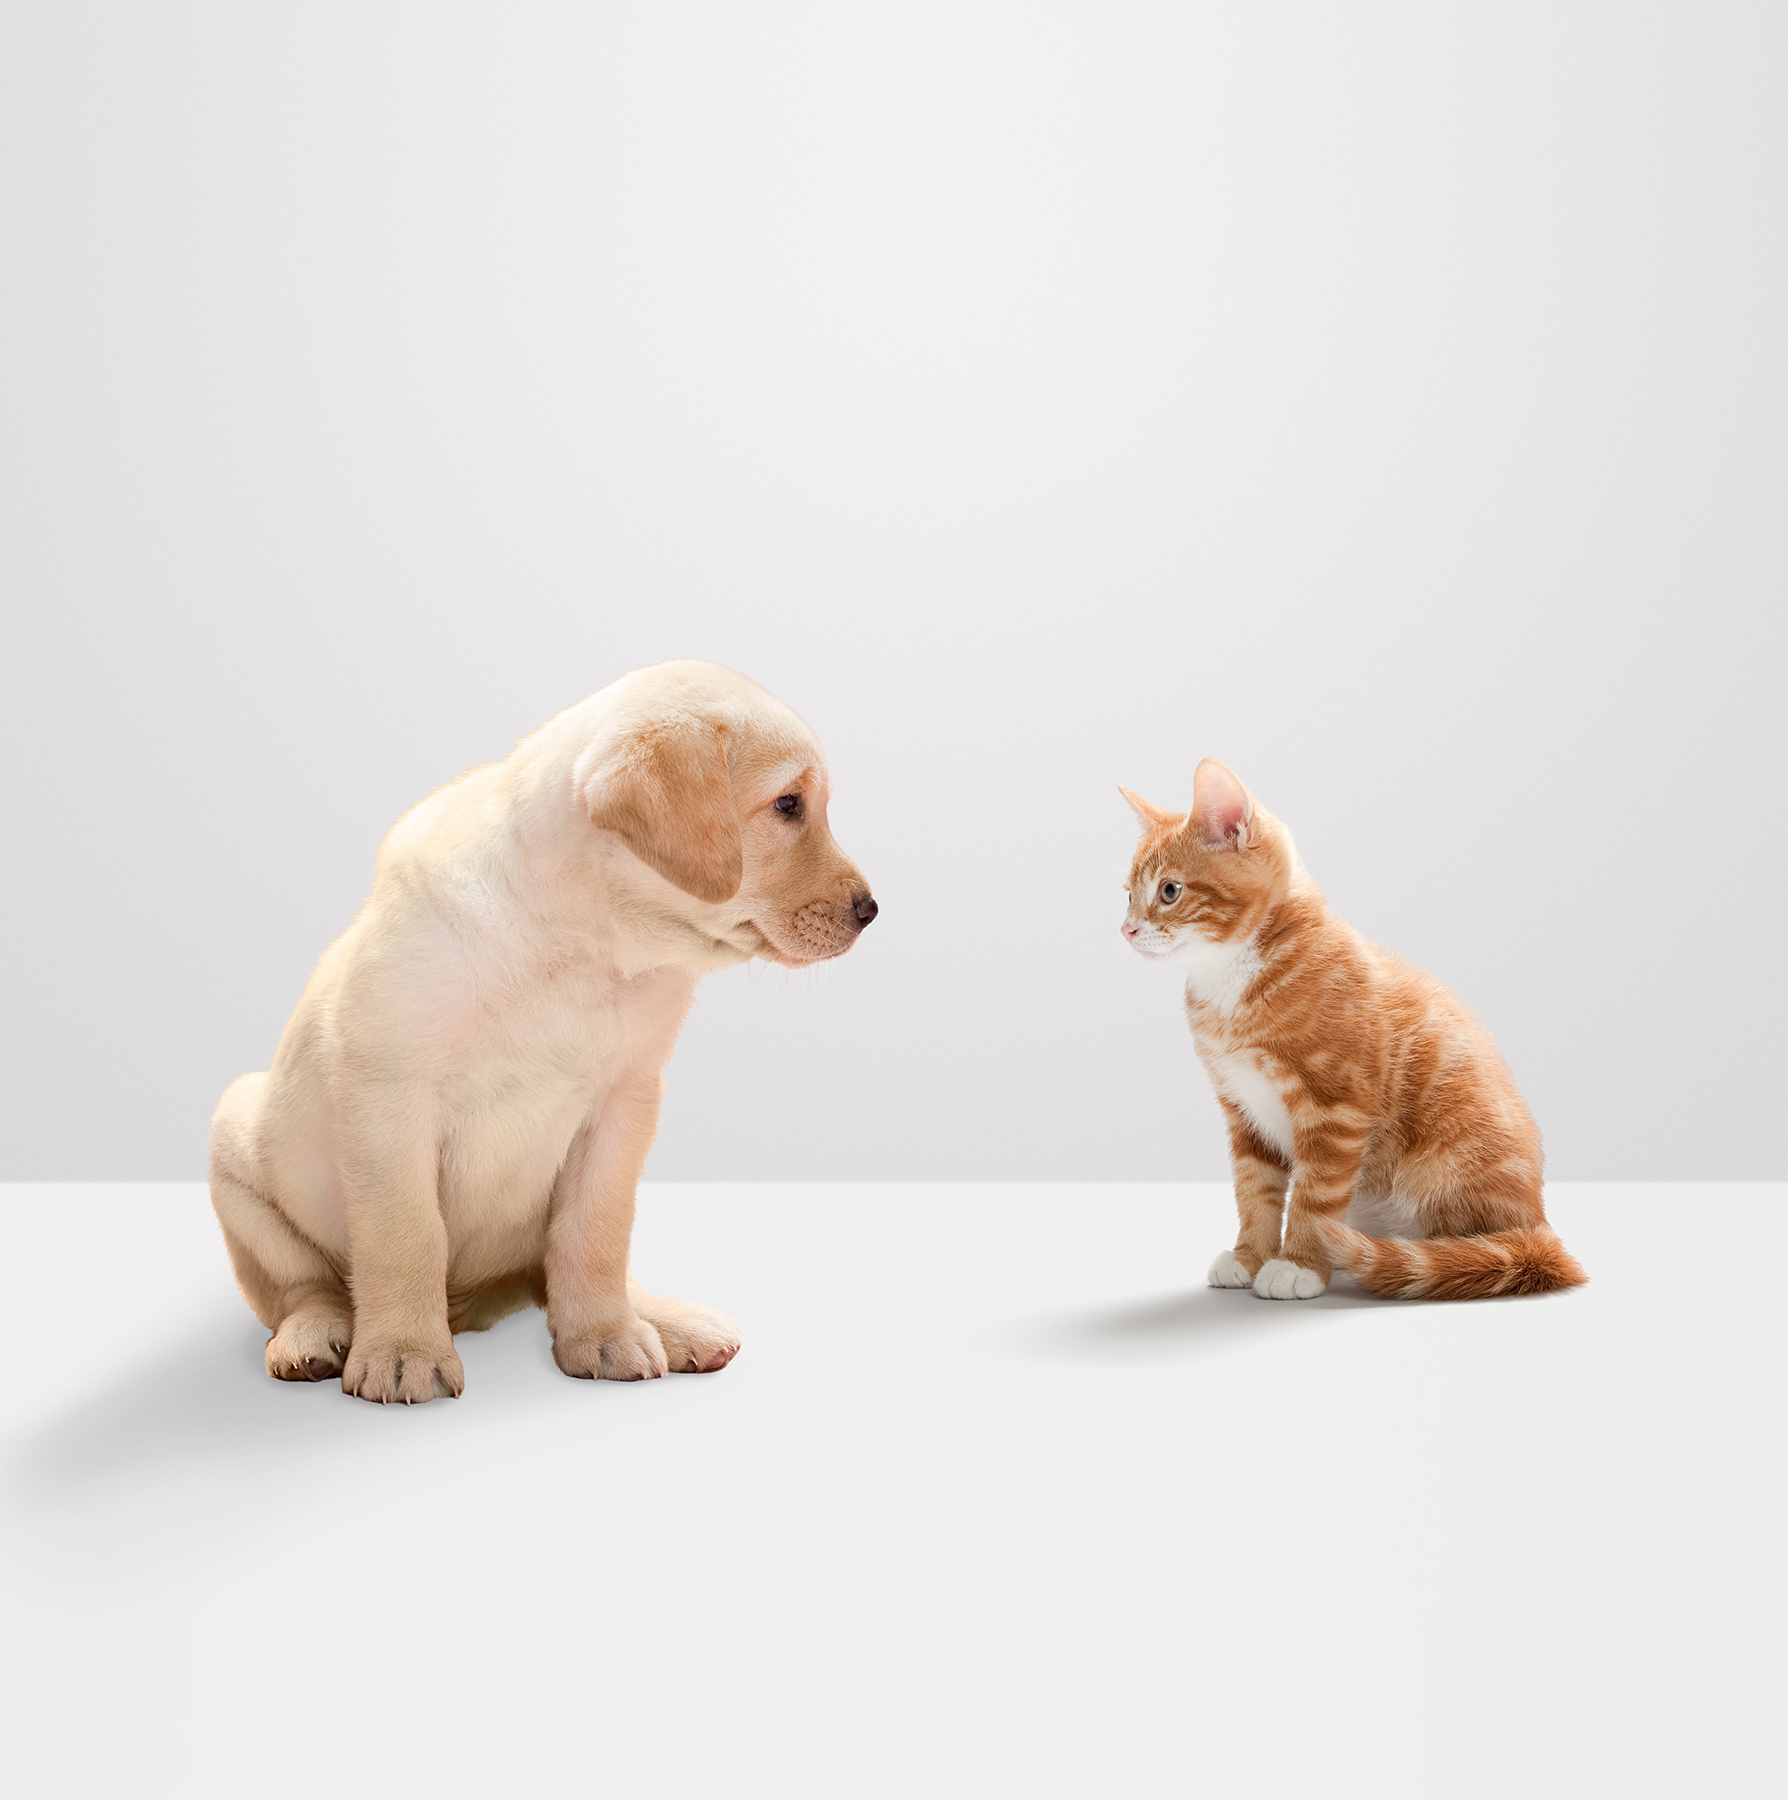 Puppy and kitten face off